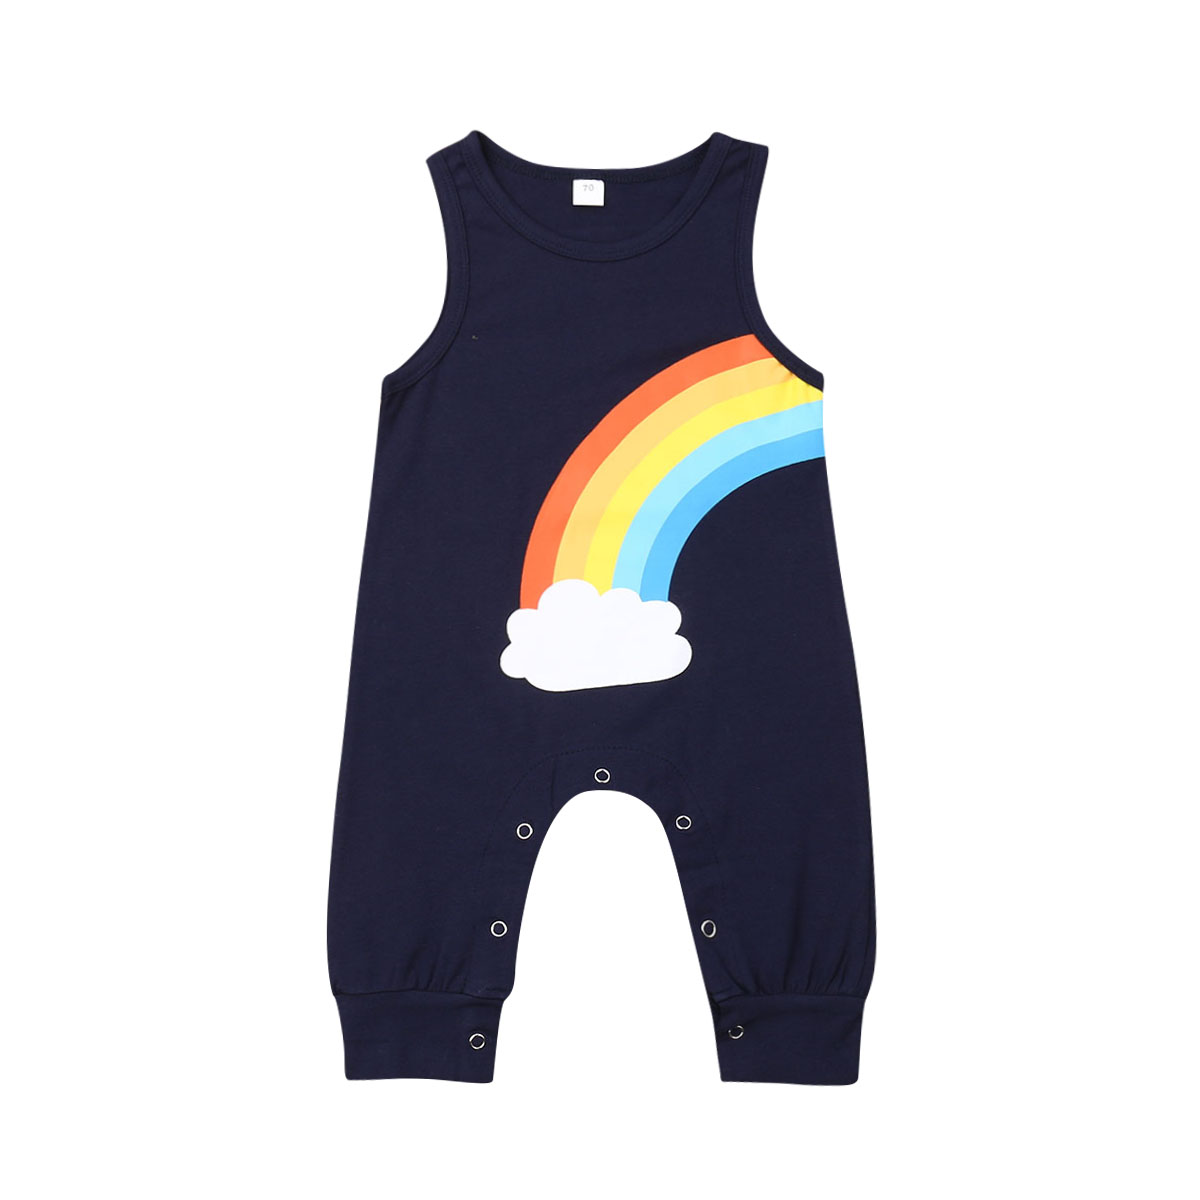 Summer Baby Boys Rainbow Romper Outfit Clothes